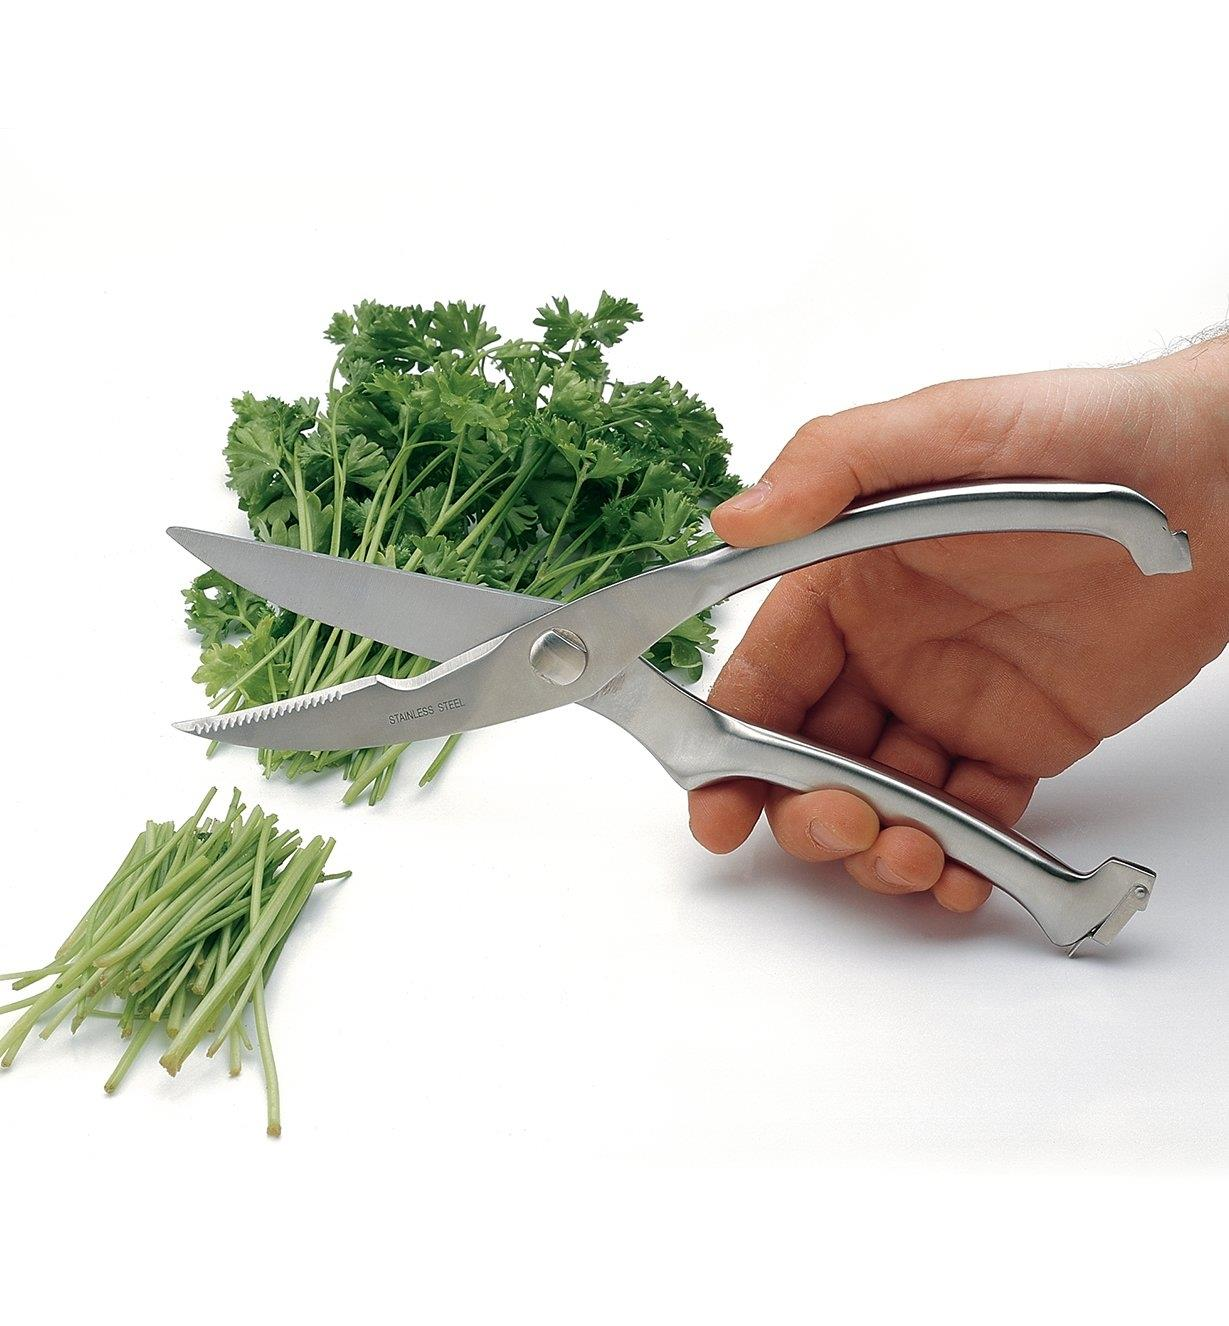 Cutting parsley with Stainless-Steel Kitchen Shears